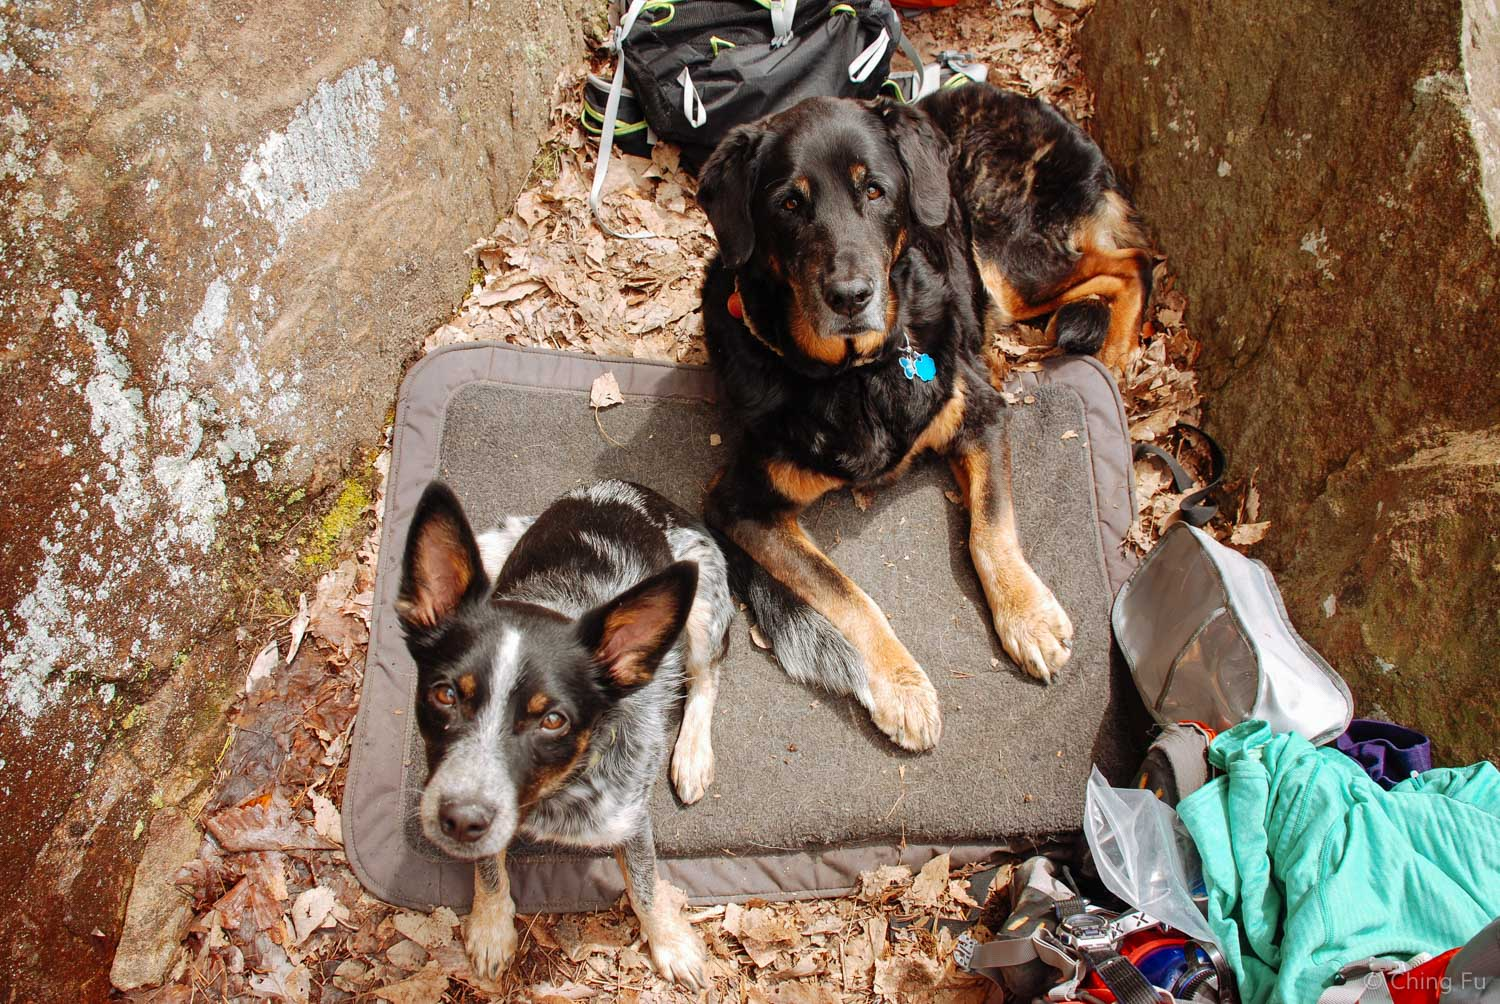 Tyki and Tybee chilling while we were rock climbing in TN a few years ago.